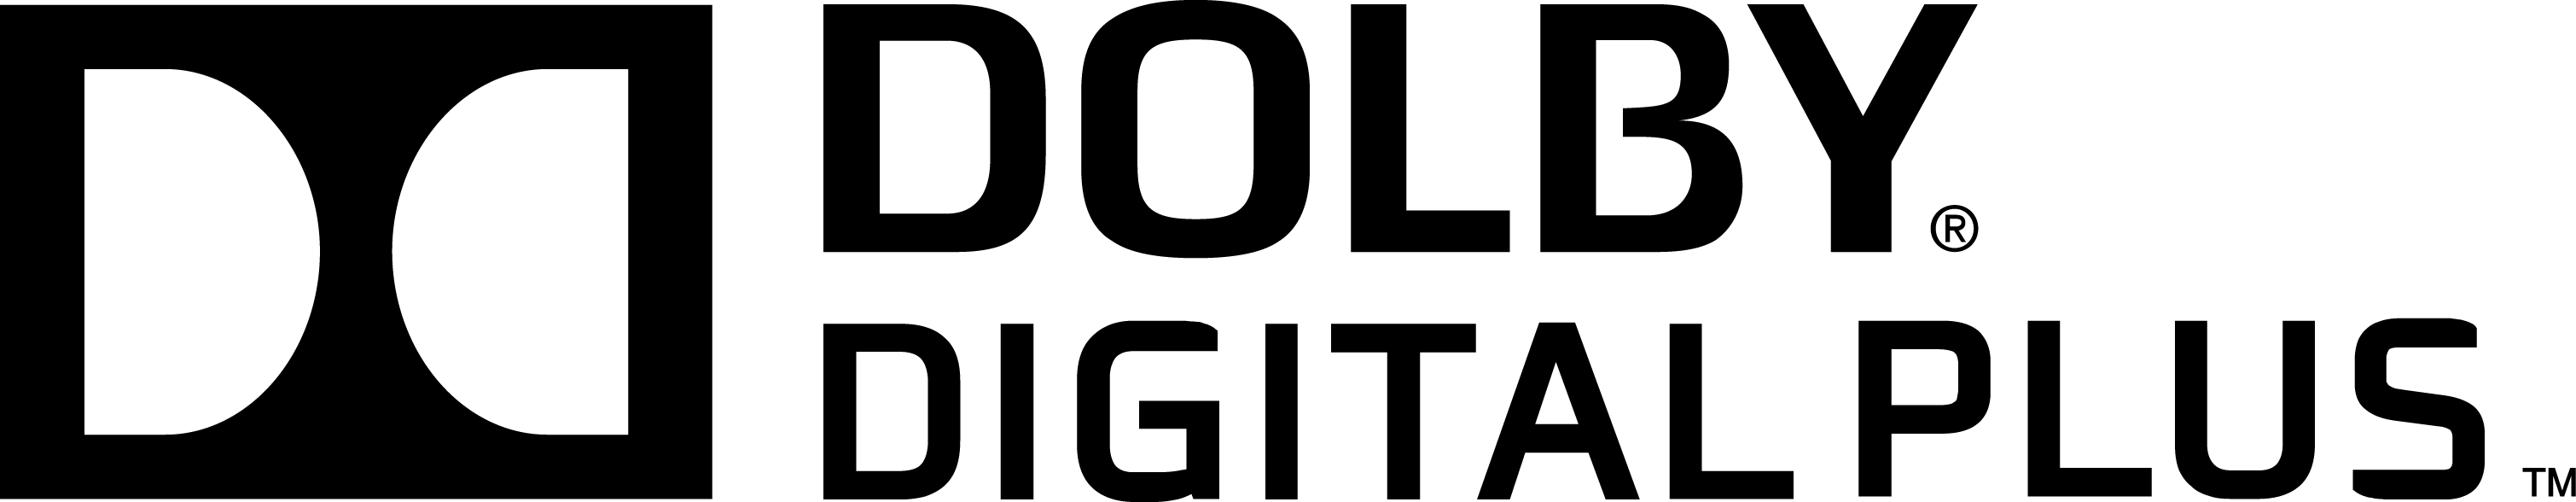 Dolby Stereo Plus Logo png